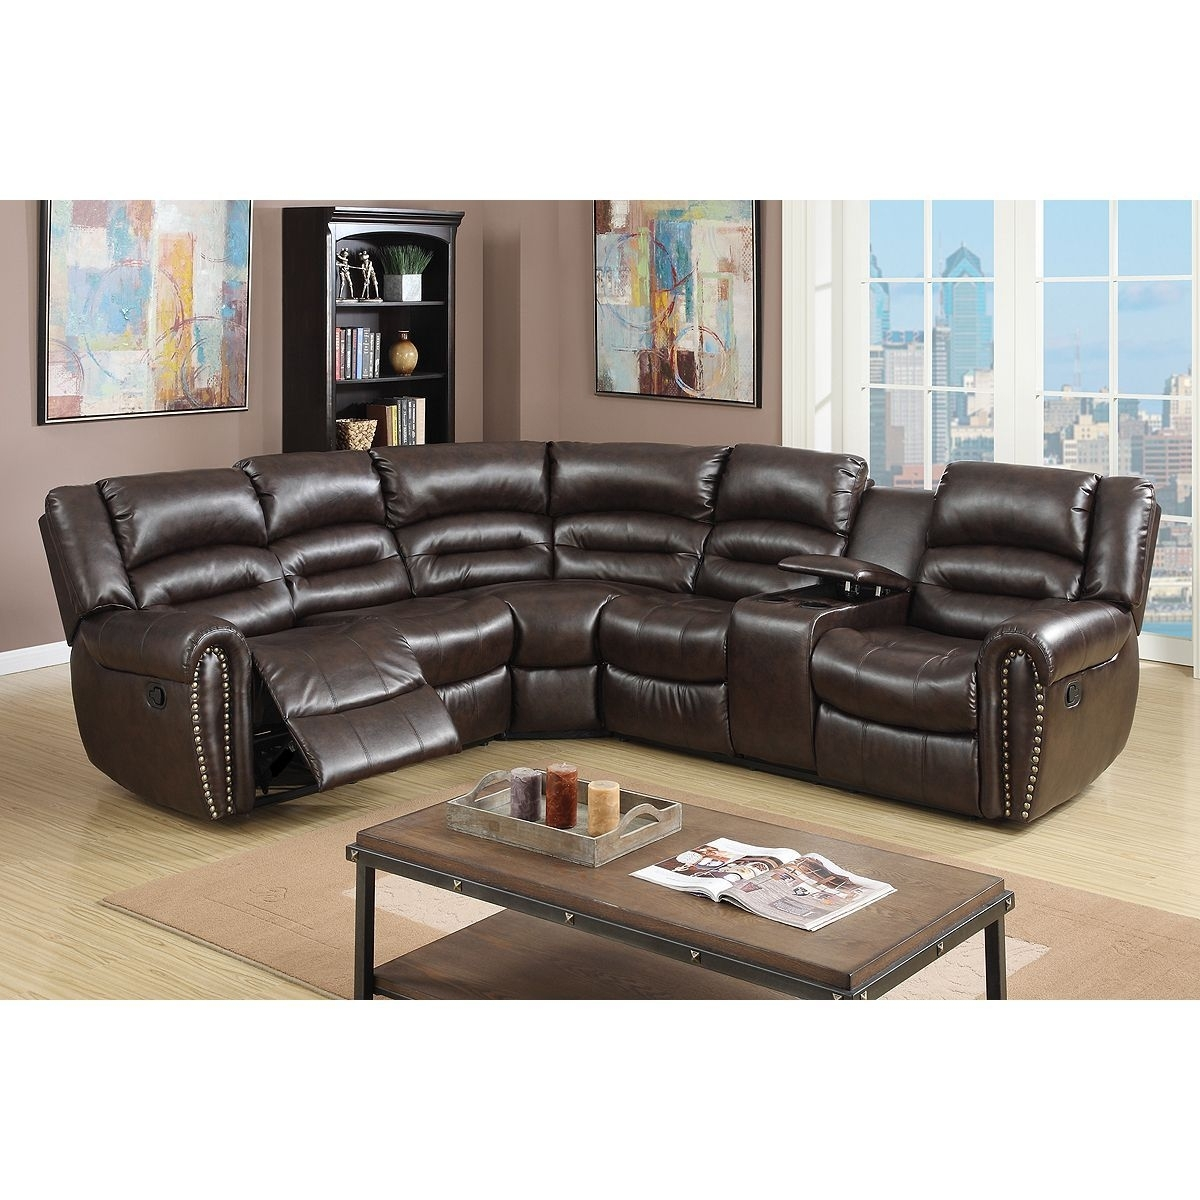 American Eagle Furniture Ek-Lb309-Dc Dark Chocolate Sofa C in Tenny Dark Grey 2 Piece Left Facing Chaise Sectionals With 2 Headrest (Image 4 of 30)